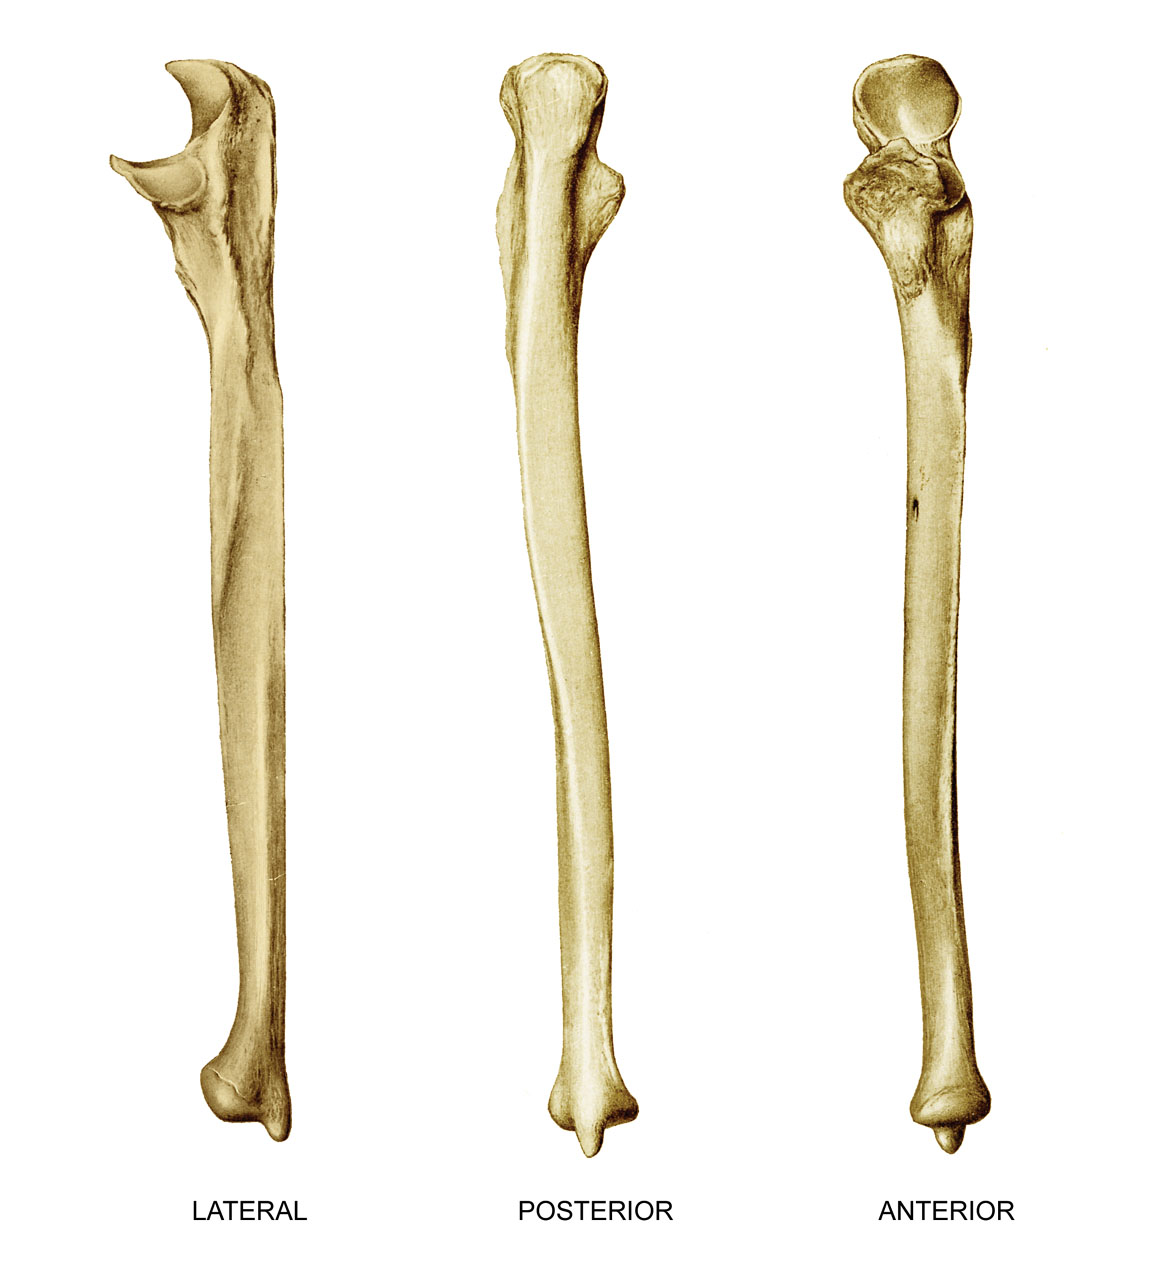 anatomyEXPERT - Styloid process of the ulna - Structure Detail